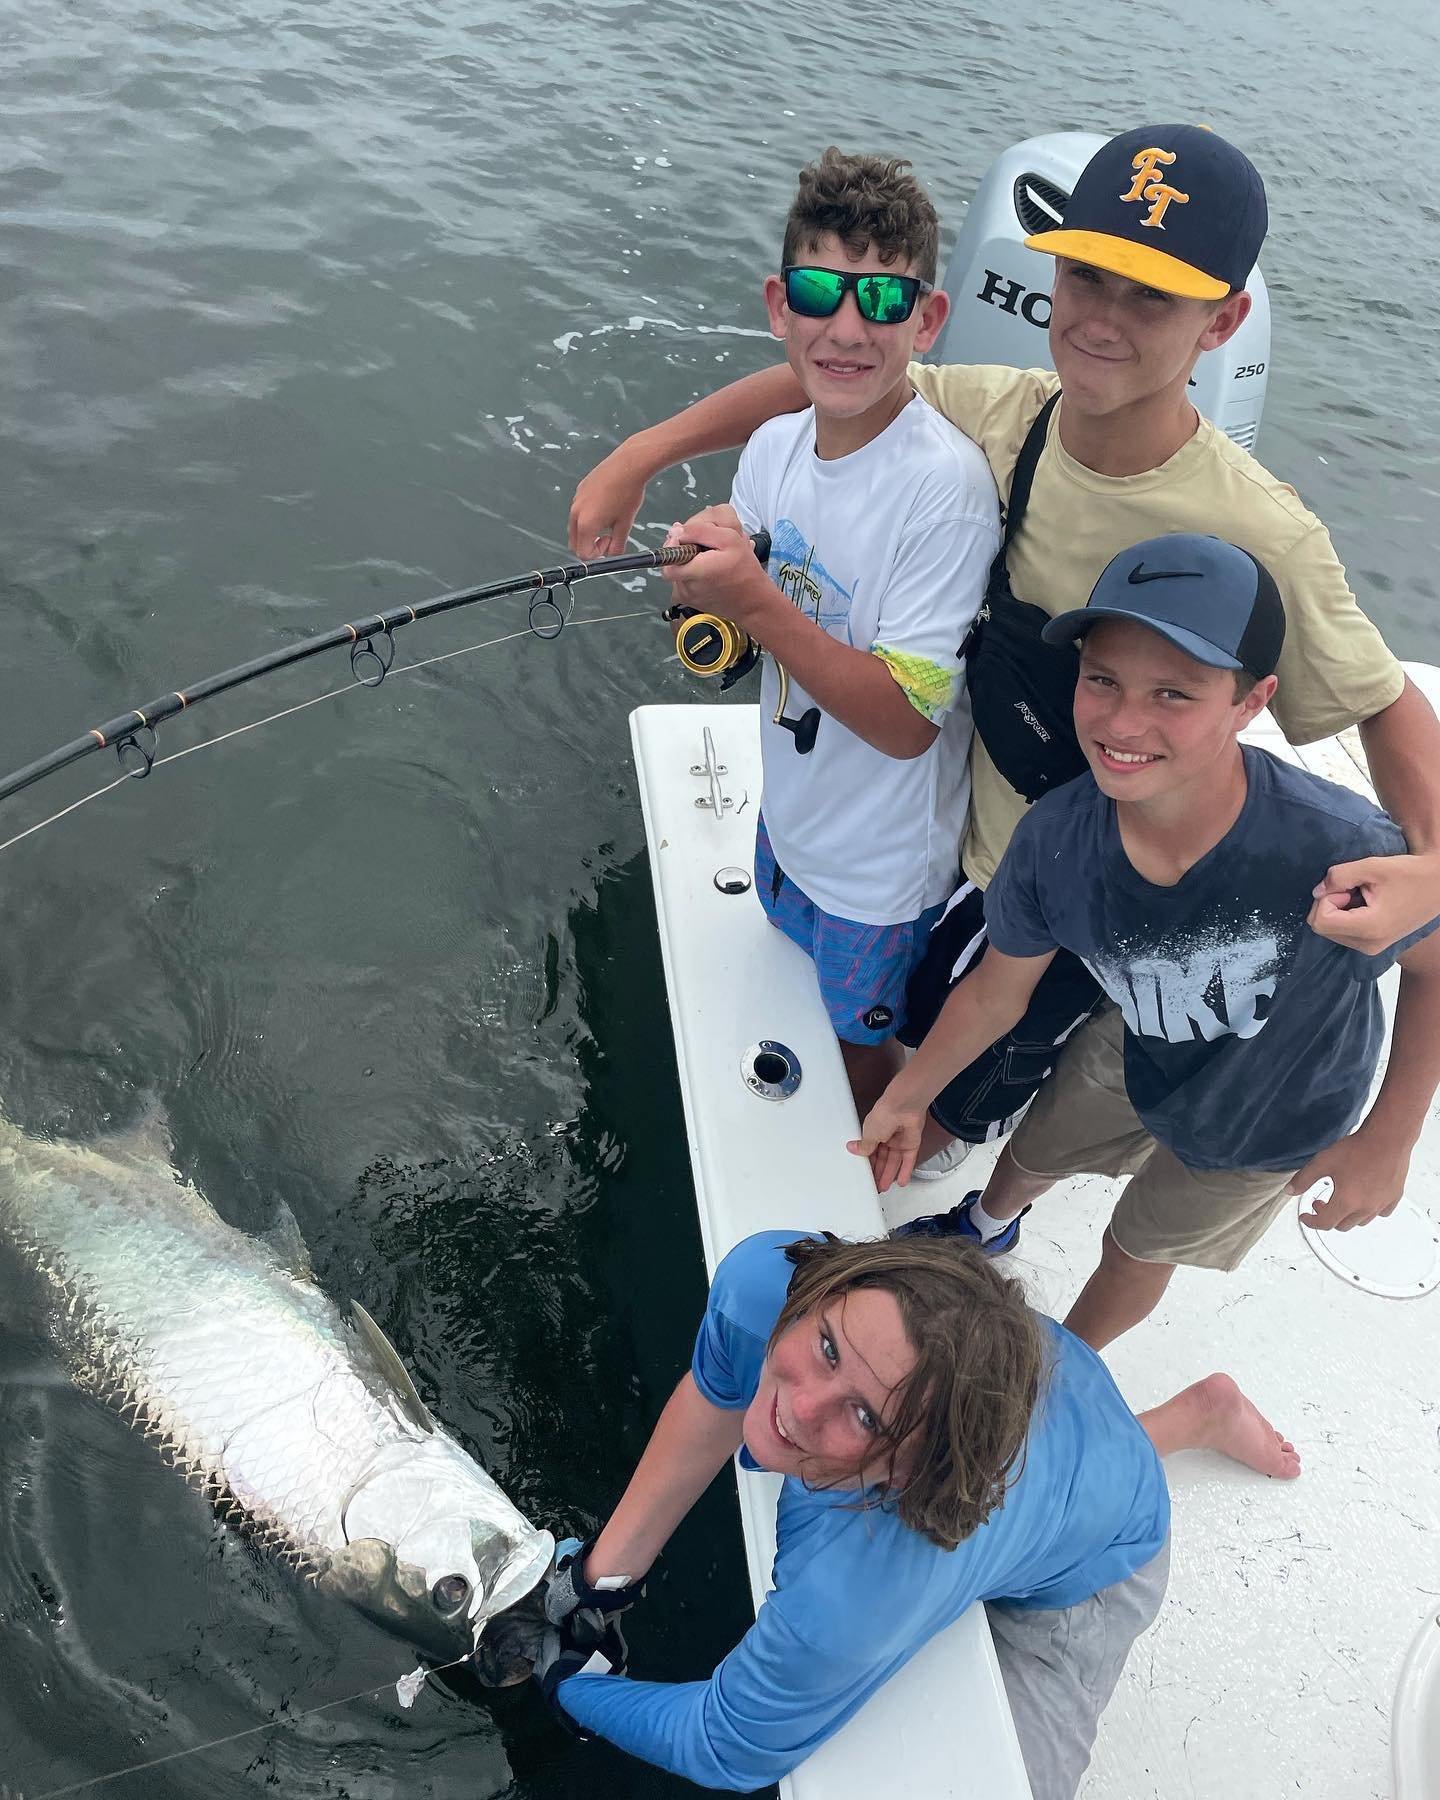 Tarpon, Seatrout, Grouper, Snapper, Shark and a few more critters made for a heck of a memorable graduation trip today for the local squad of groms. Thank you Louisa and all the mommas for sending your boys out with me. #GOHARDFISHING #miamisluckiestcharterboat #miamibeach #charterfishing #INSHORE #LIGHTTACKLE #INSHOREGUIDE #GOHARDINTHEPAINT YOU BOYS DID GREAT WORK today @_they.luvj_ @jongourrier @mathias_campbell_12 @javierrodriguez4337